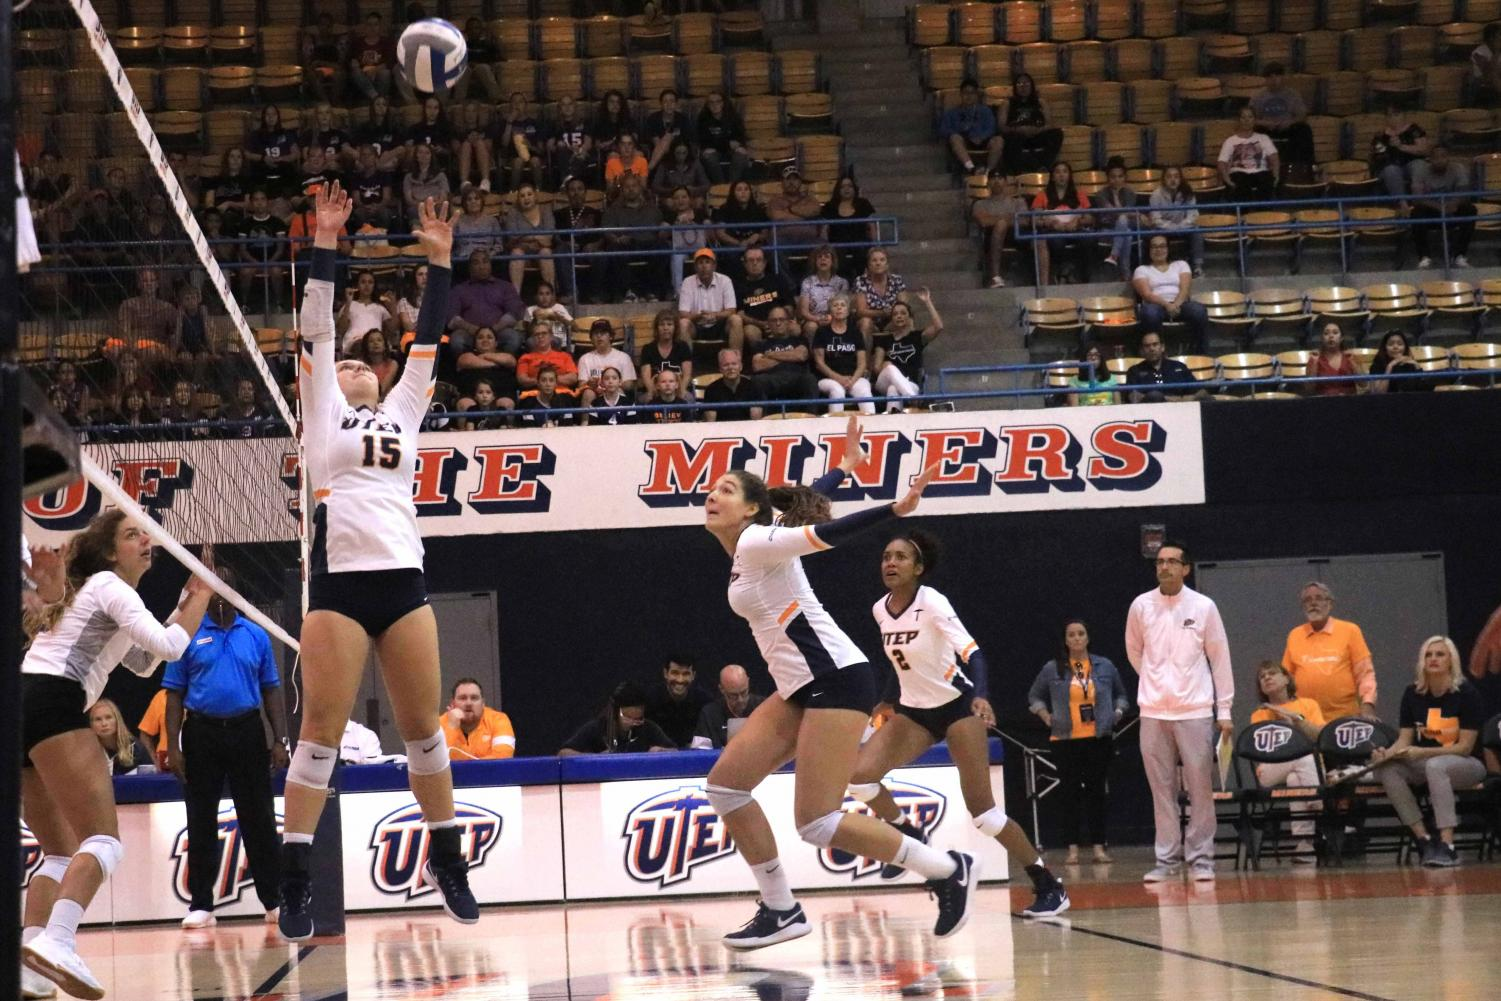 Setter Kristen Fritsche at UTEP's Volleyball game.